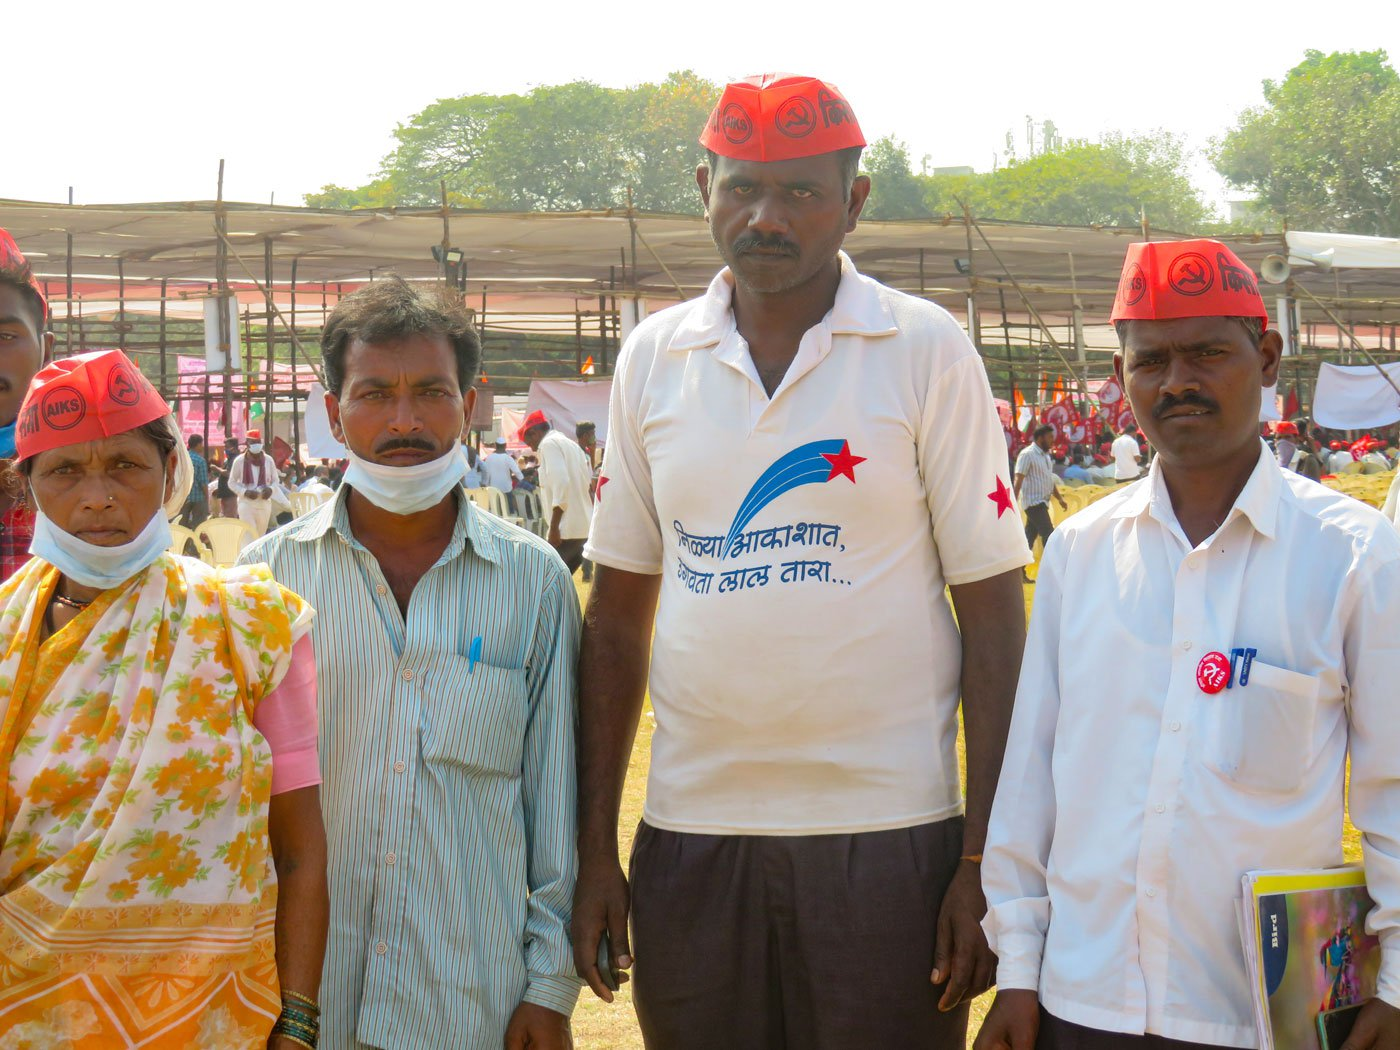 Bhagubai Mengal, Lahu Ughade, Eknath Pengal and Namdev Bhangre (left to right) believe that the laws will affect their households' rations